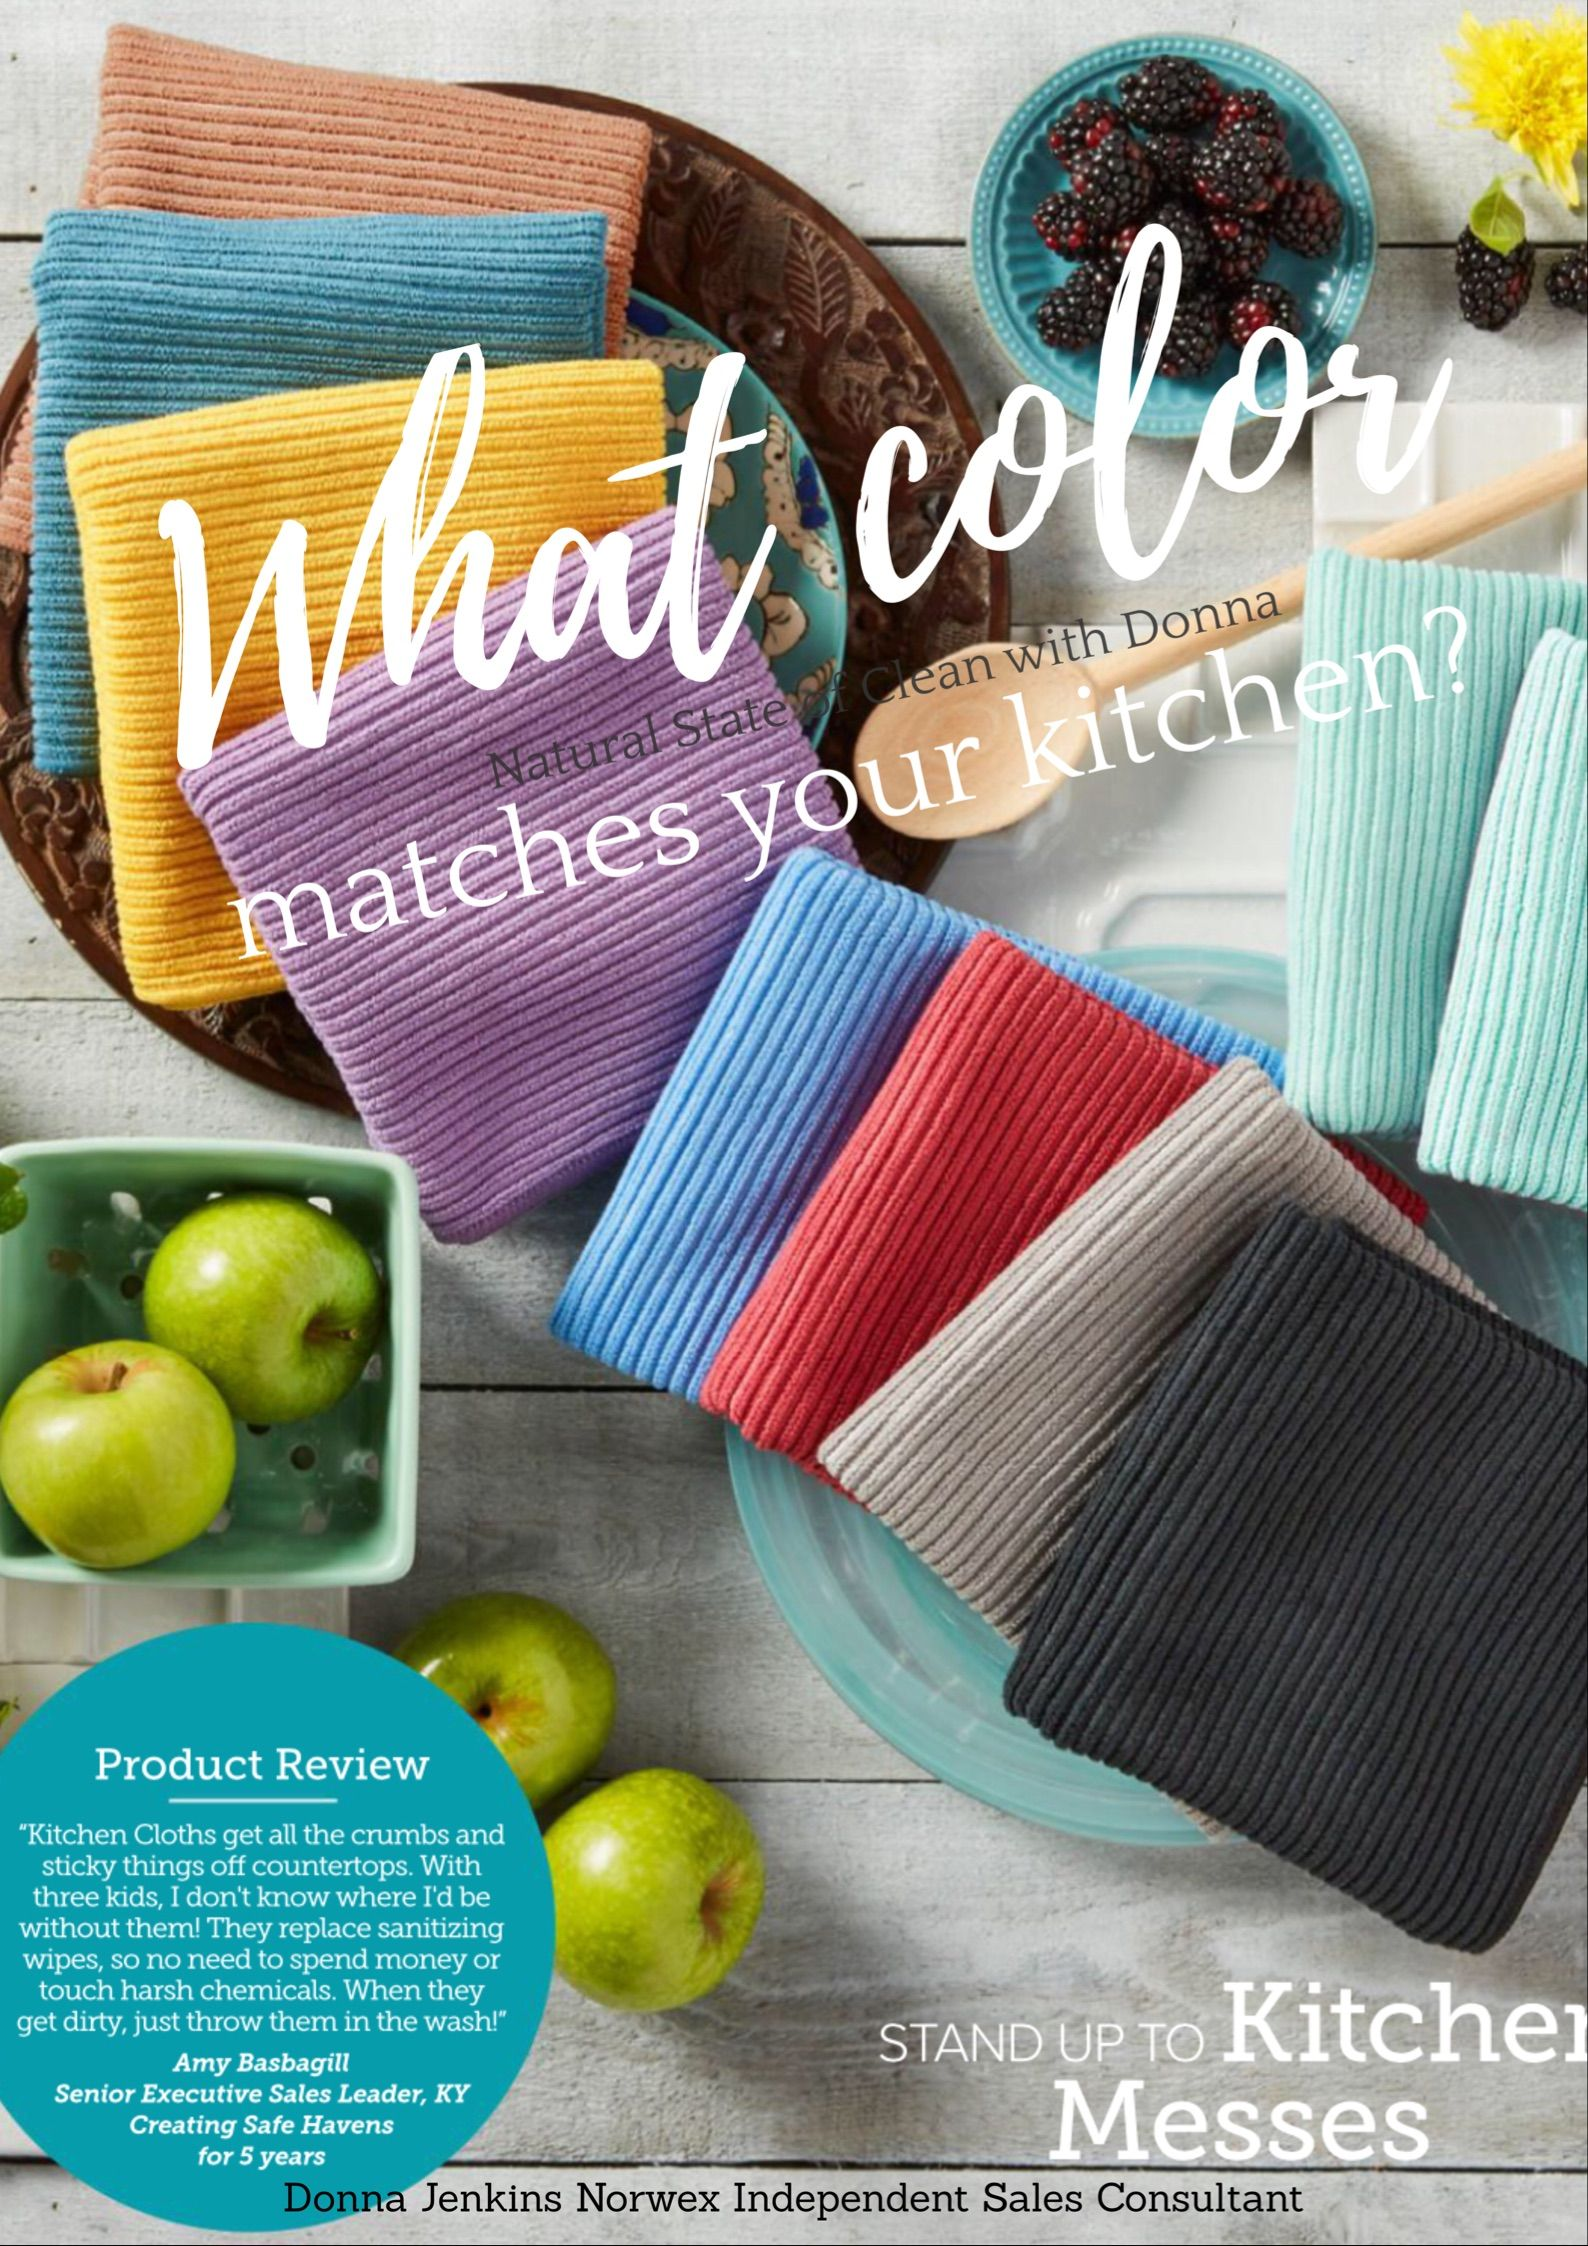 The Norwex Kitchen Cloths And Towels Come In 9 Color Choices Which One Matches Your Kitchen These Beauties Make It More Fun To Reach For A Cloth Rather Than